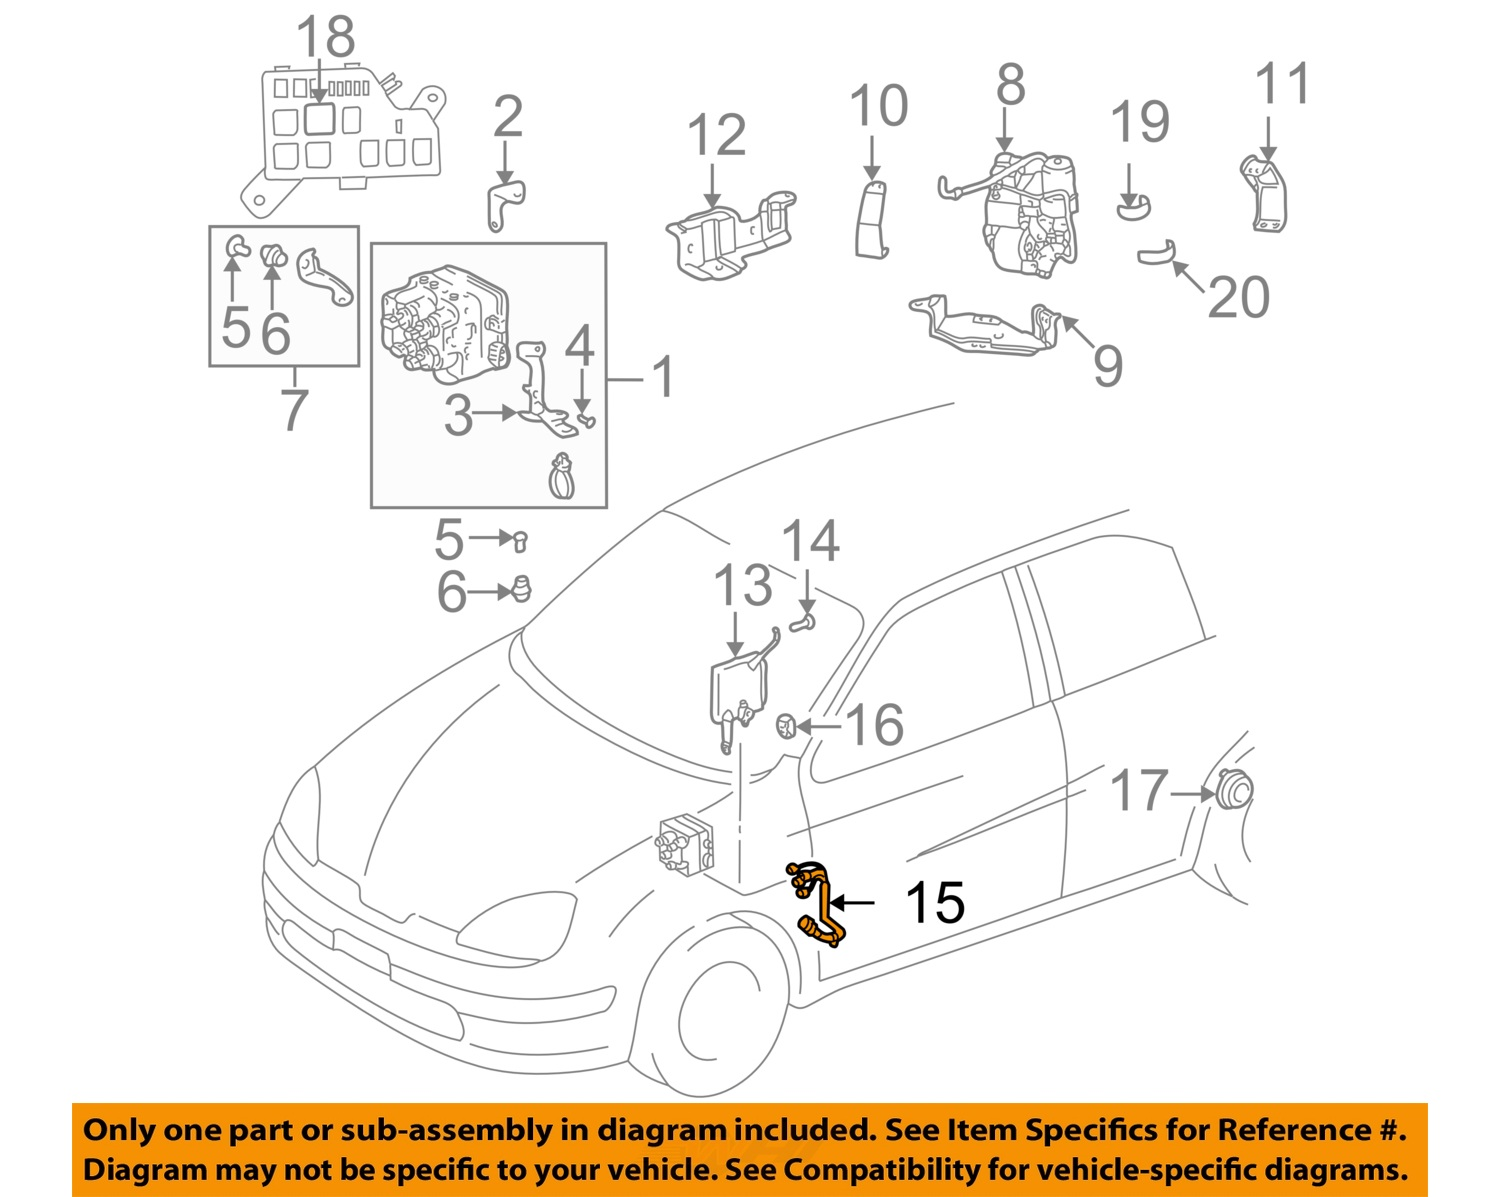 2011 Prius Abs Wiring Diagram Diagrams Schematics 2005 Fuse